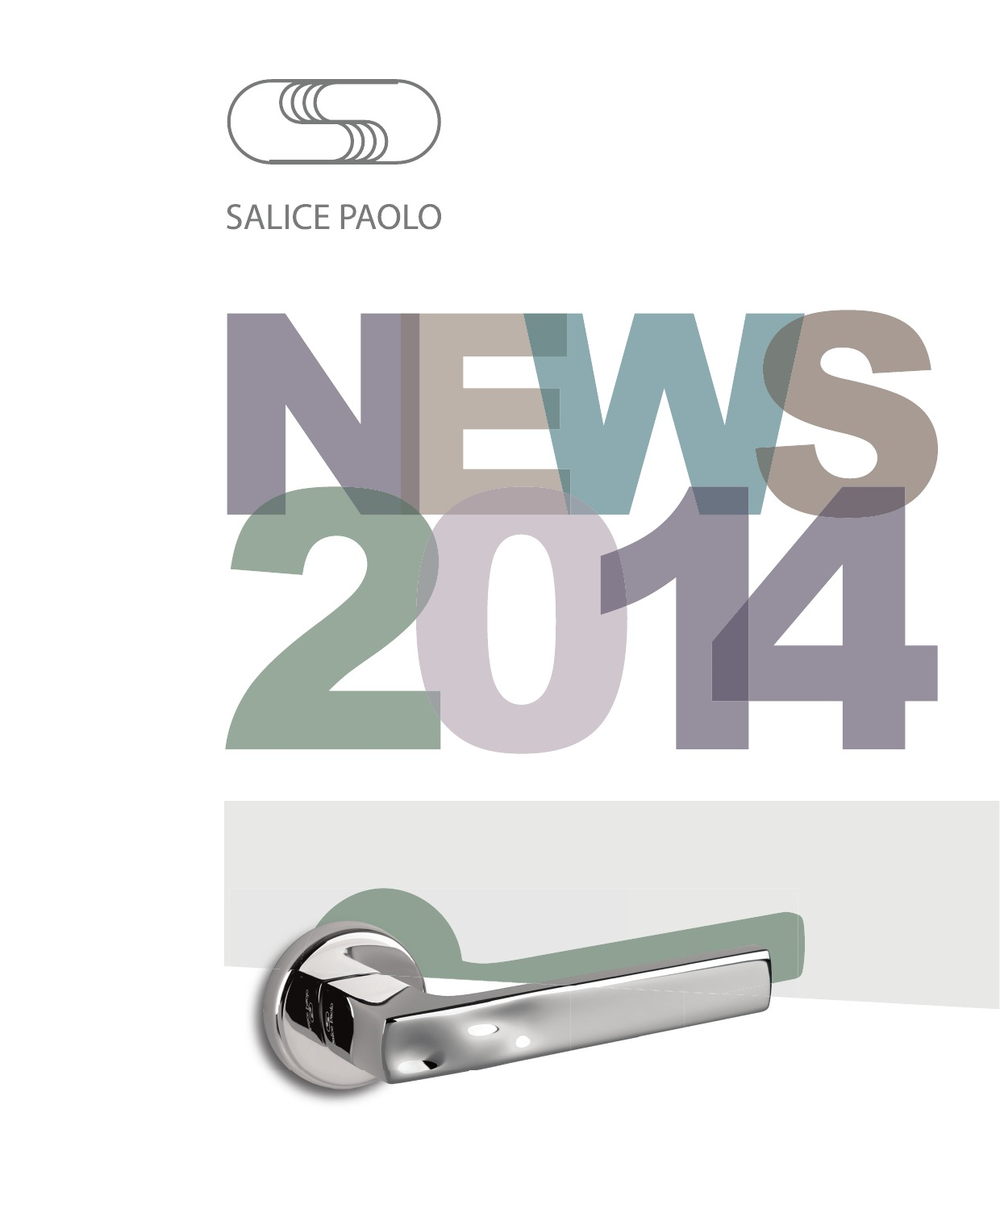 Salice paolo news 2014 catalogues international prodimex for Salice paolo